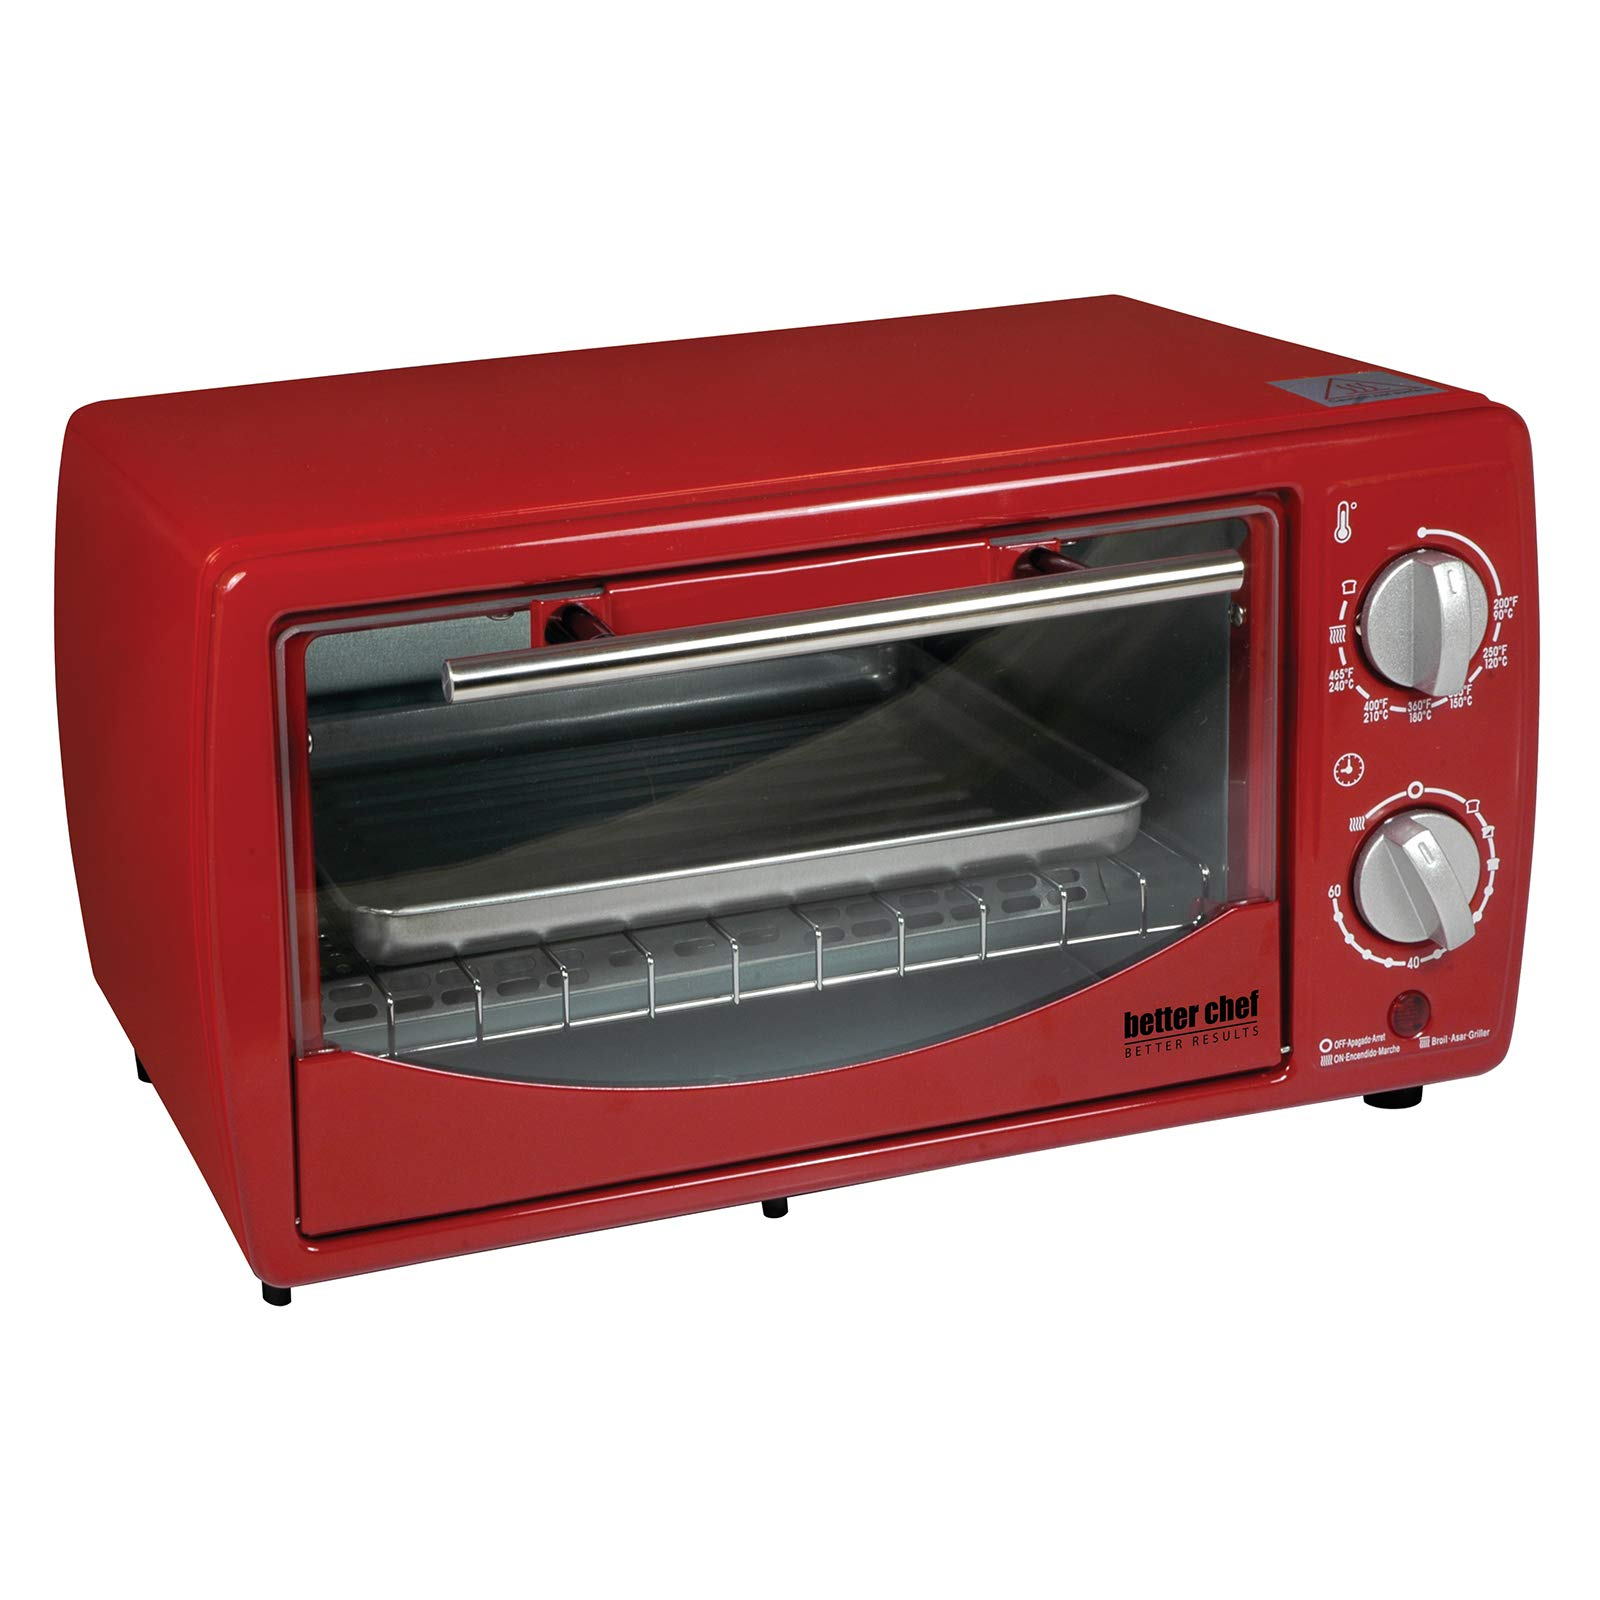 Better Chef 9 Liter Toaster Oven Broiler Red by Better Chef (Image #1)